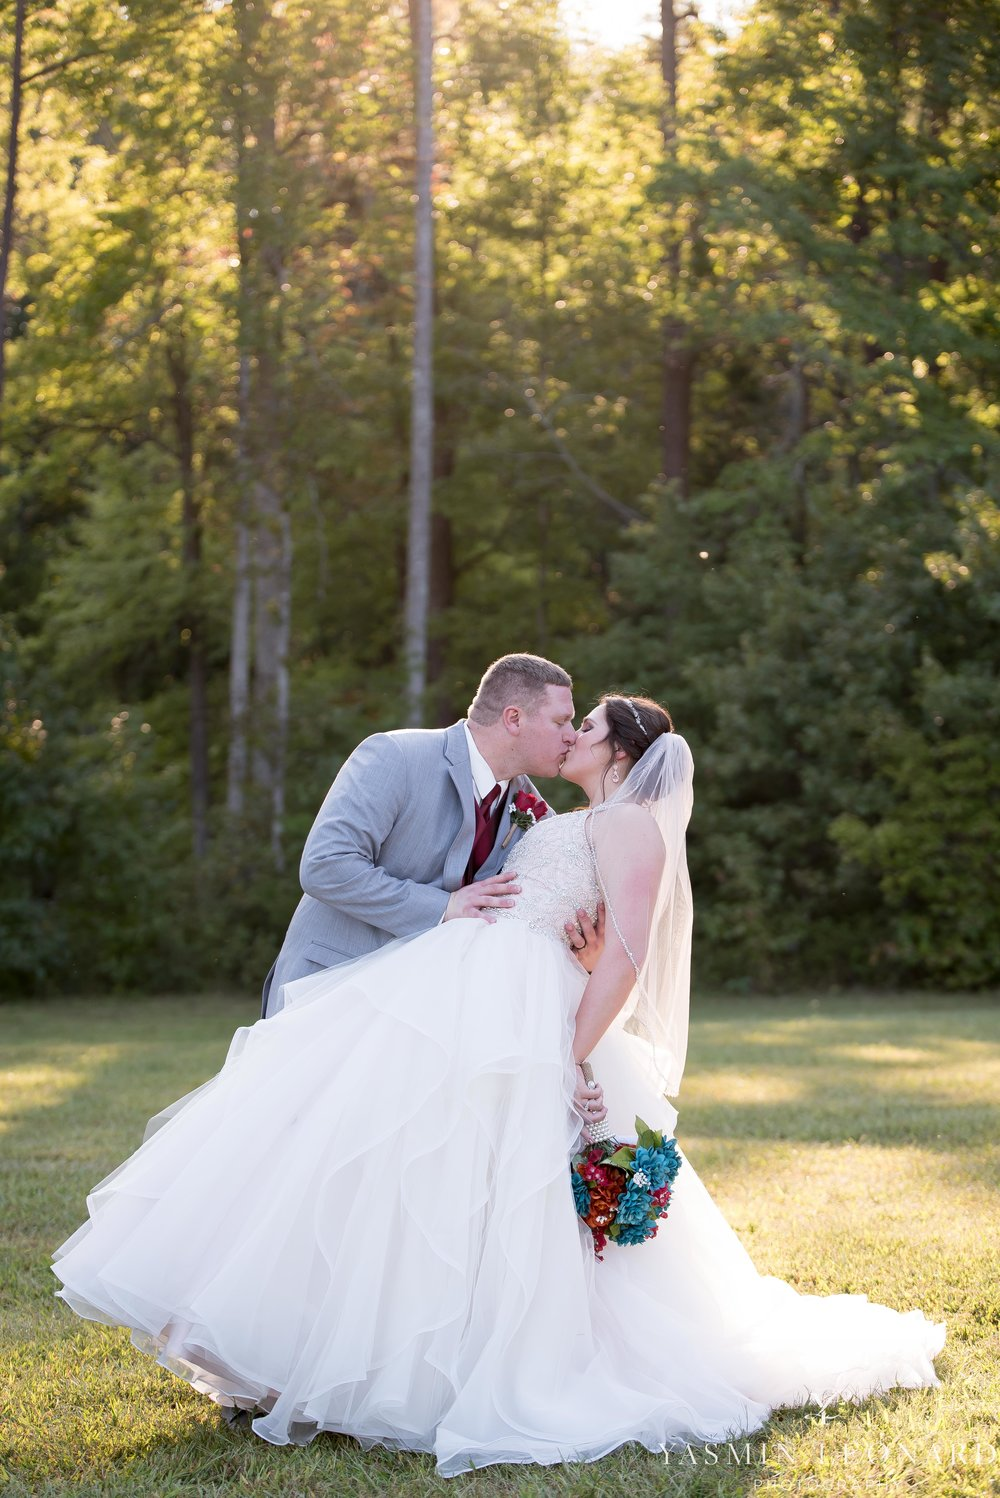 Reverie Place - Level Cross - Randleman Wedding Venues - High Point Wedding Photographer - Yasmin Leonard Photography-35.jpg